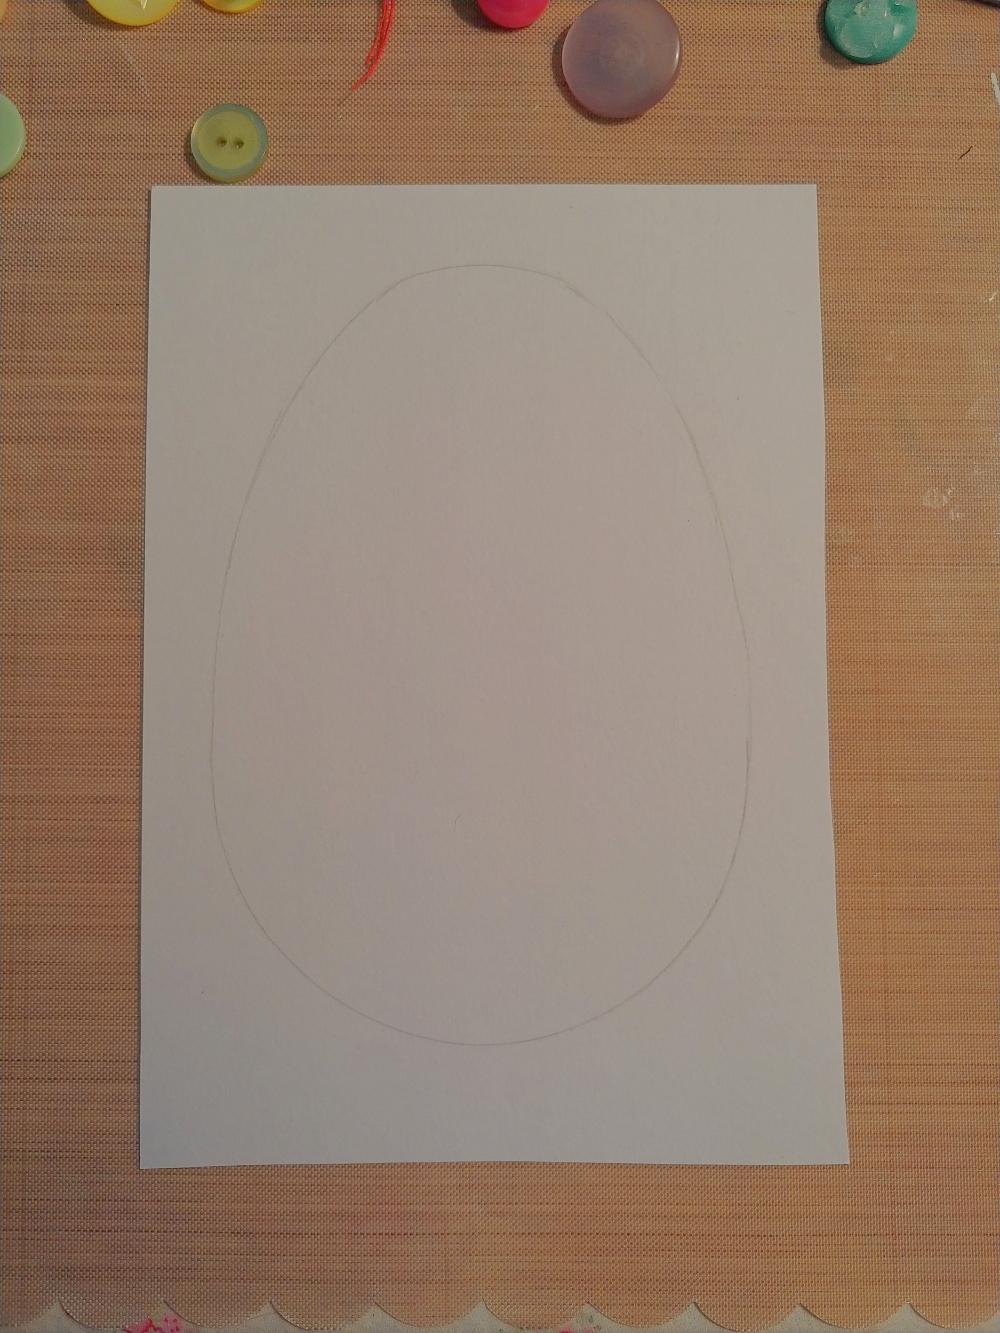 how to draw an egg shape